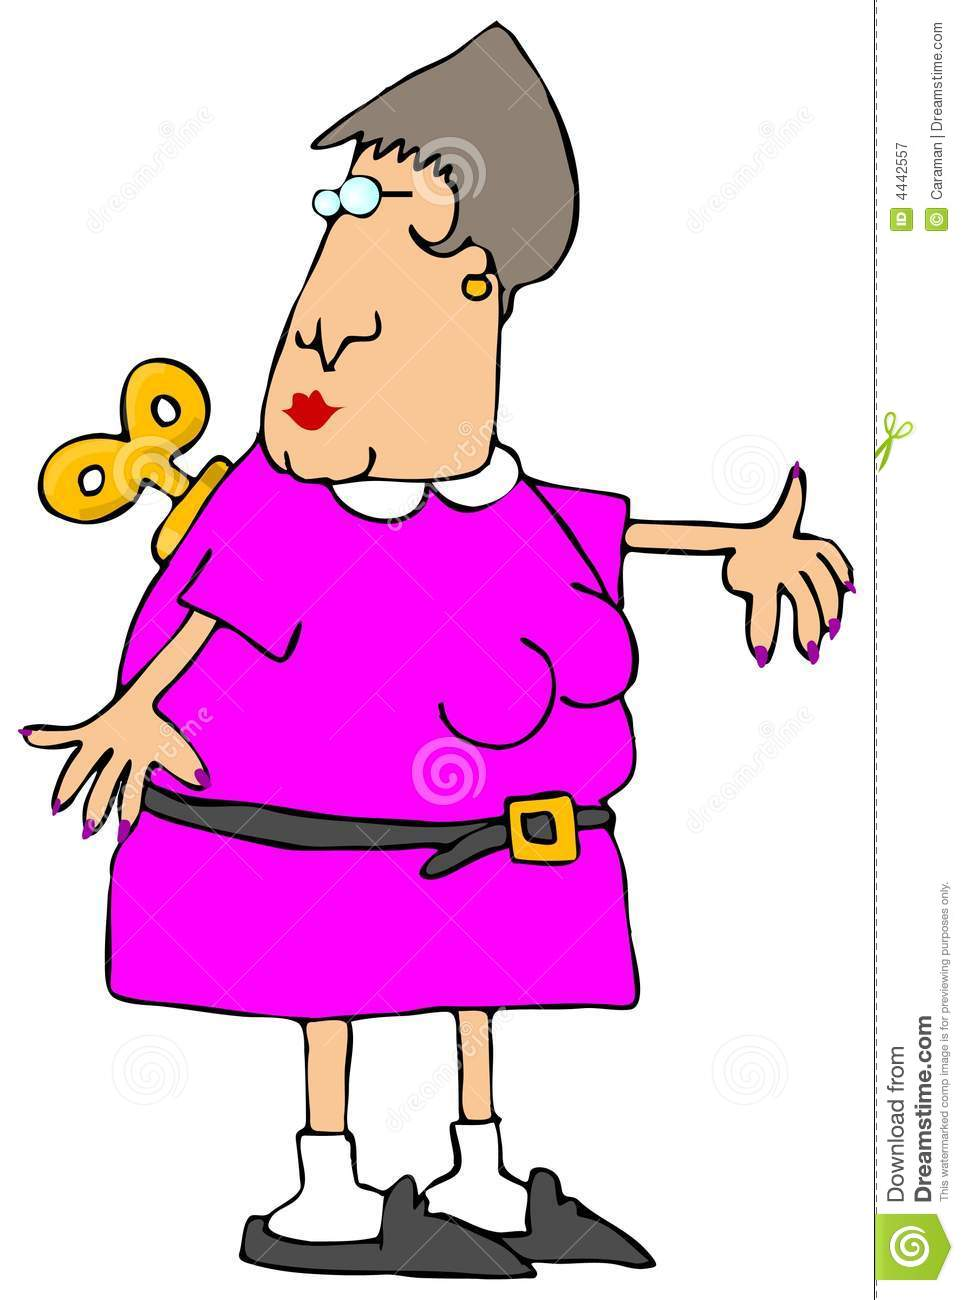 This Illustration Depicts A Woman With A Wind Up Key On Her Back